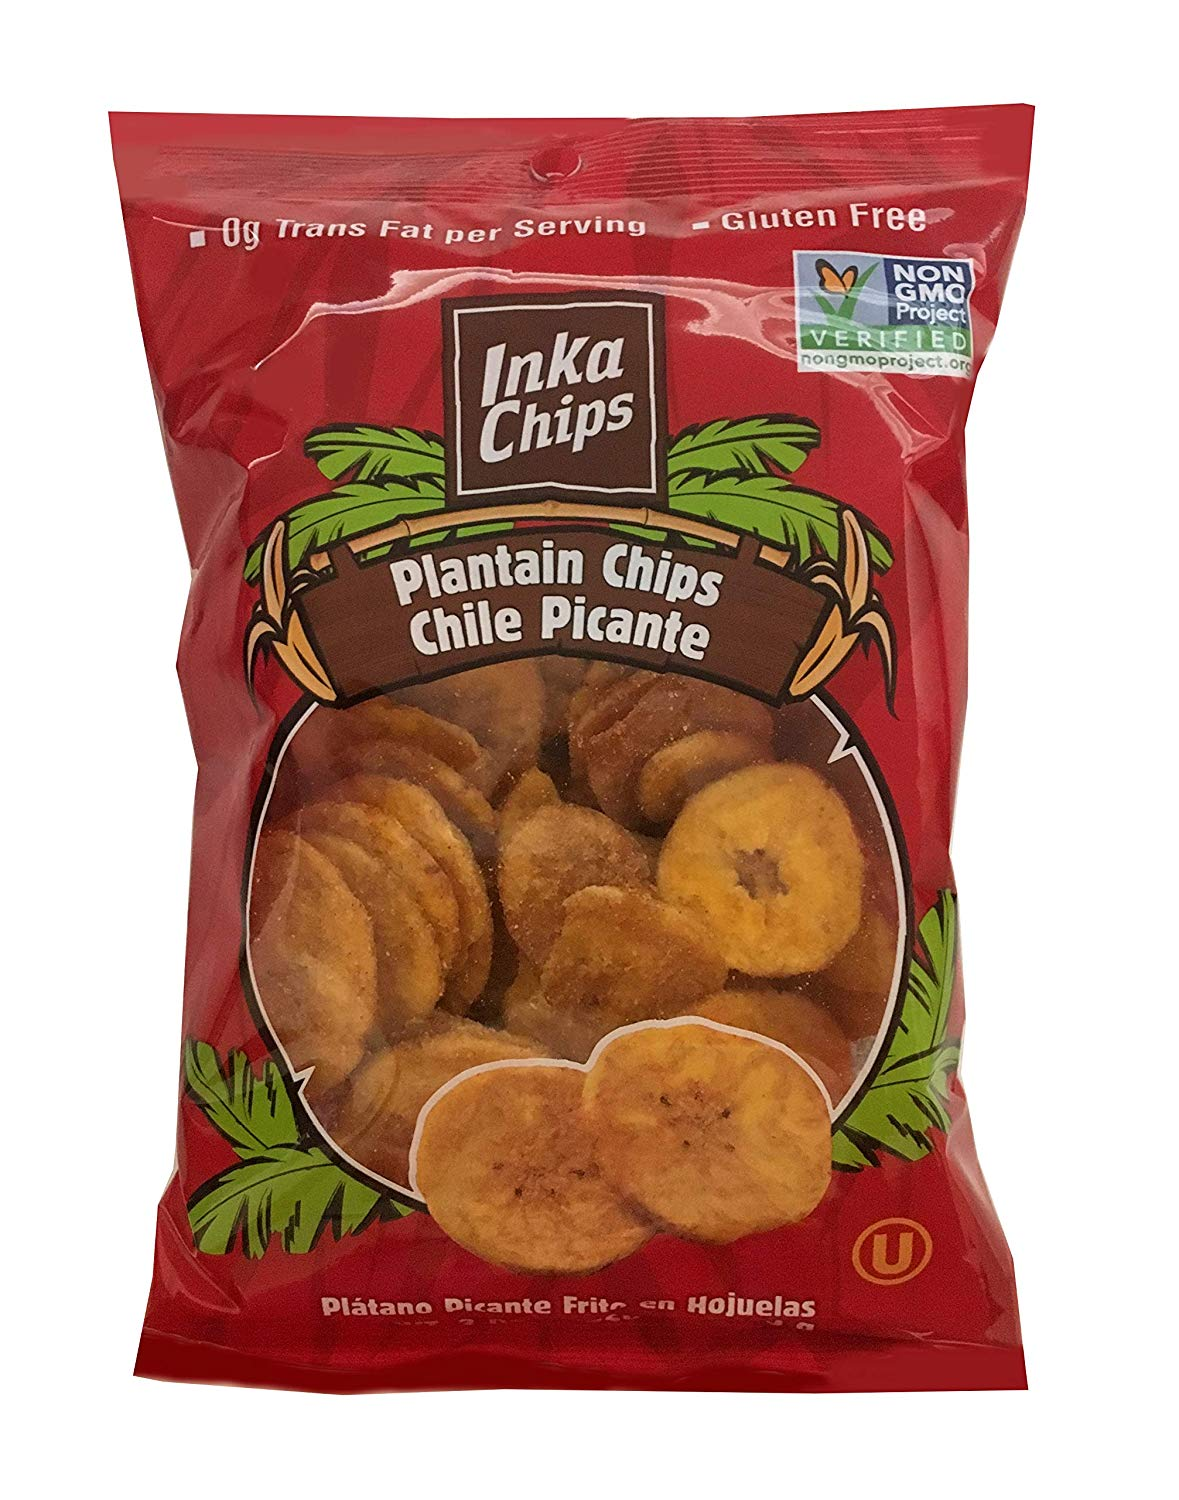 Inka Chile Picante Plaintain Chips 24/1.41oz Bags